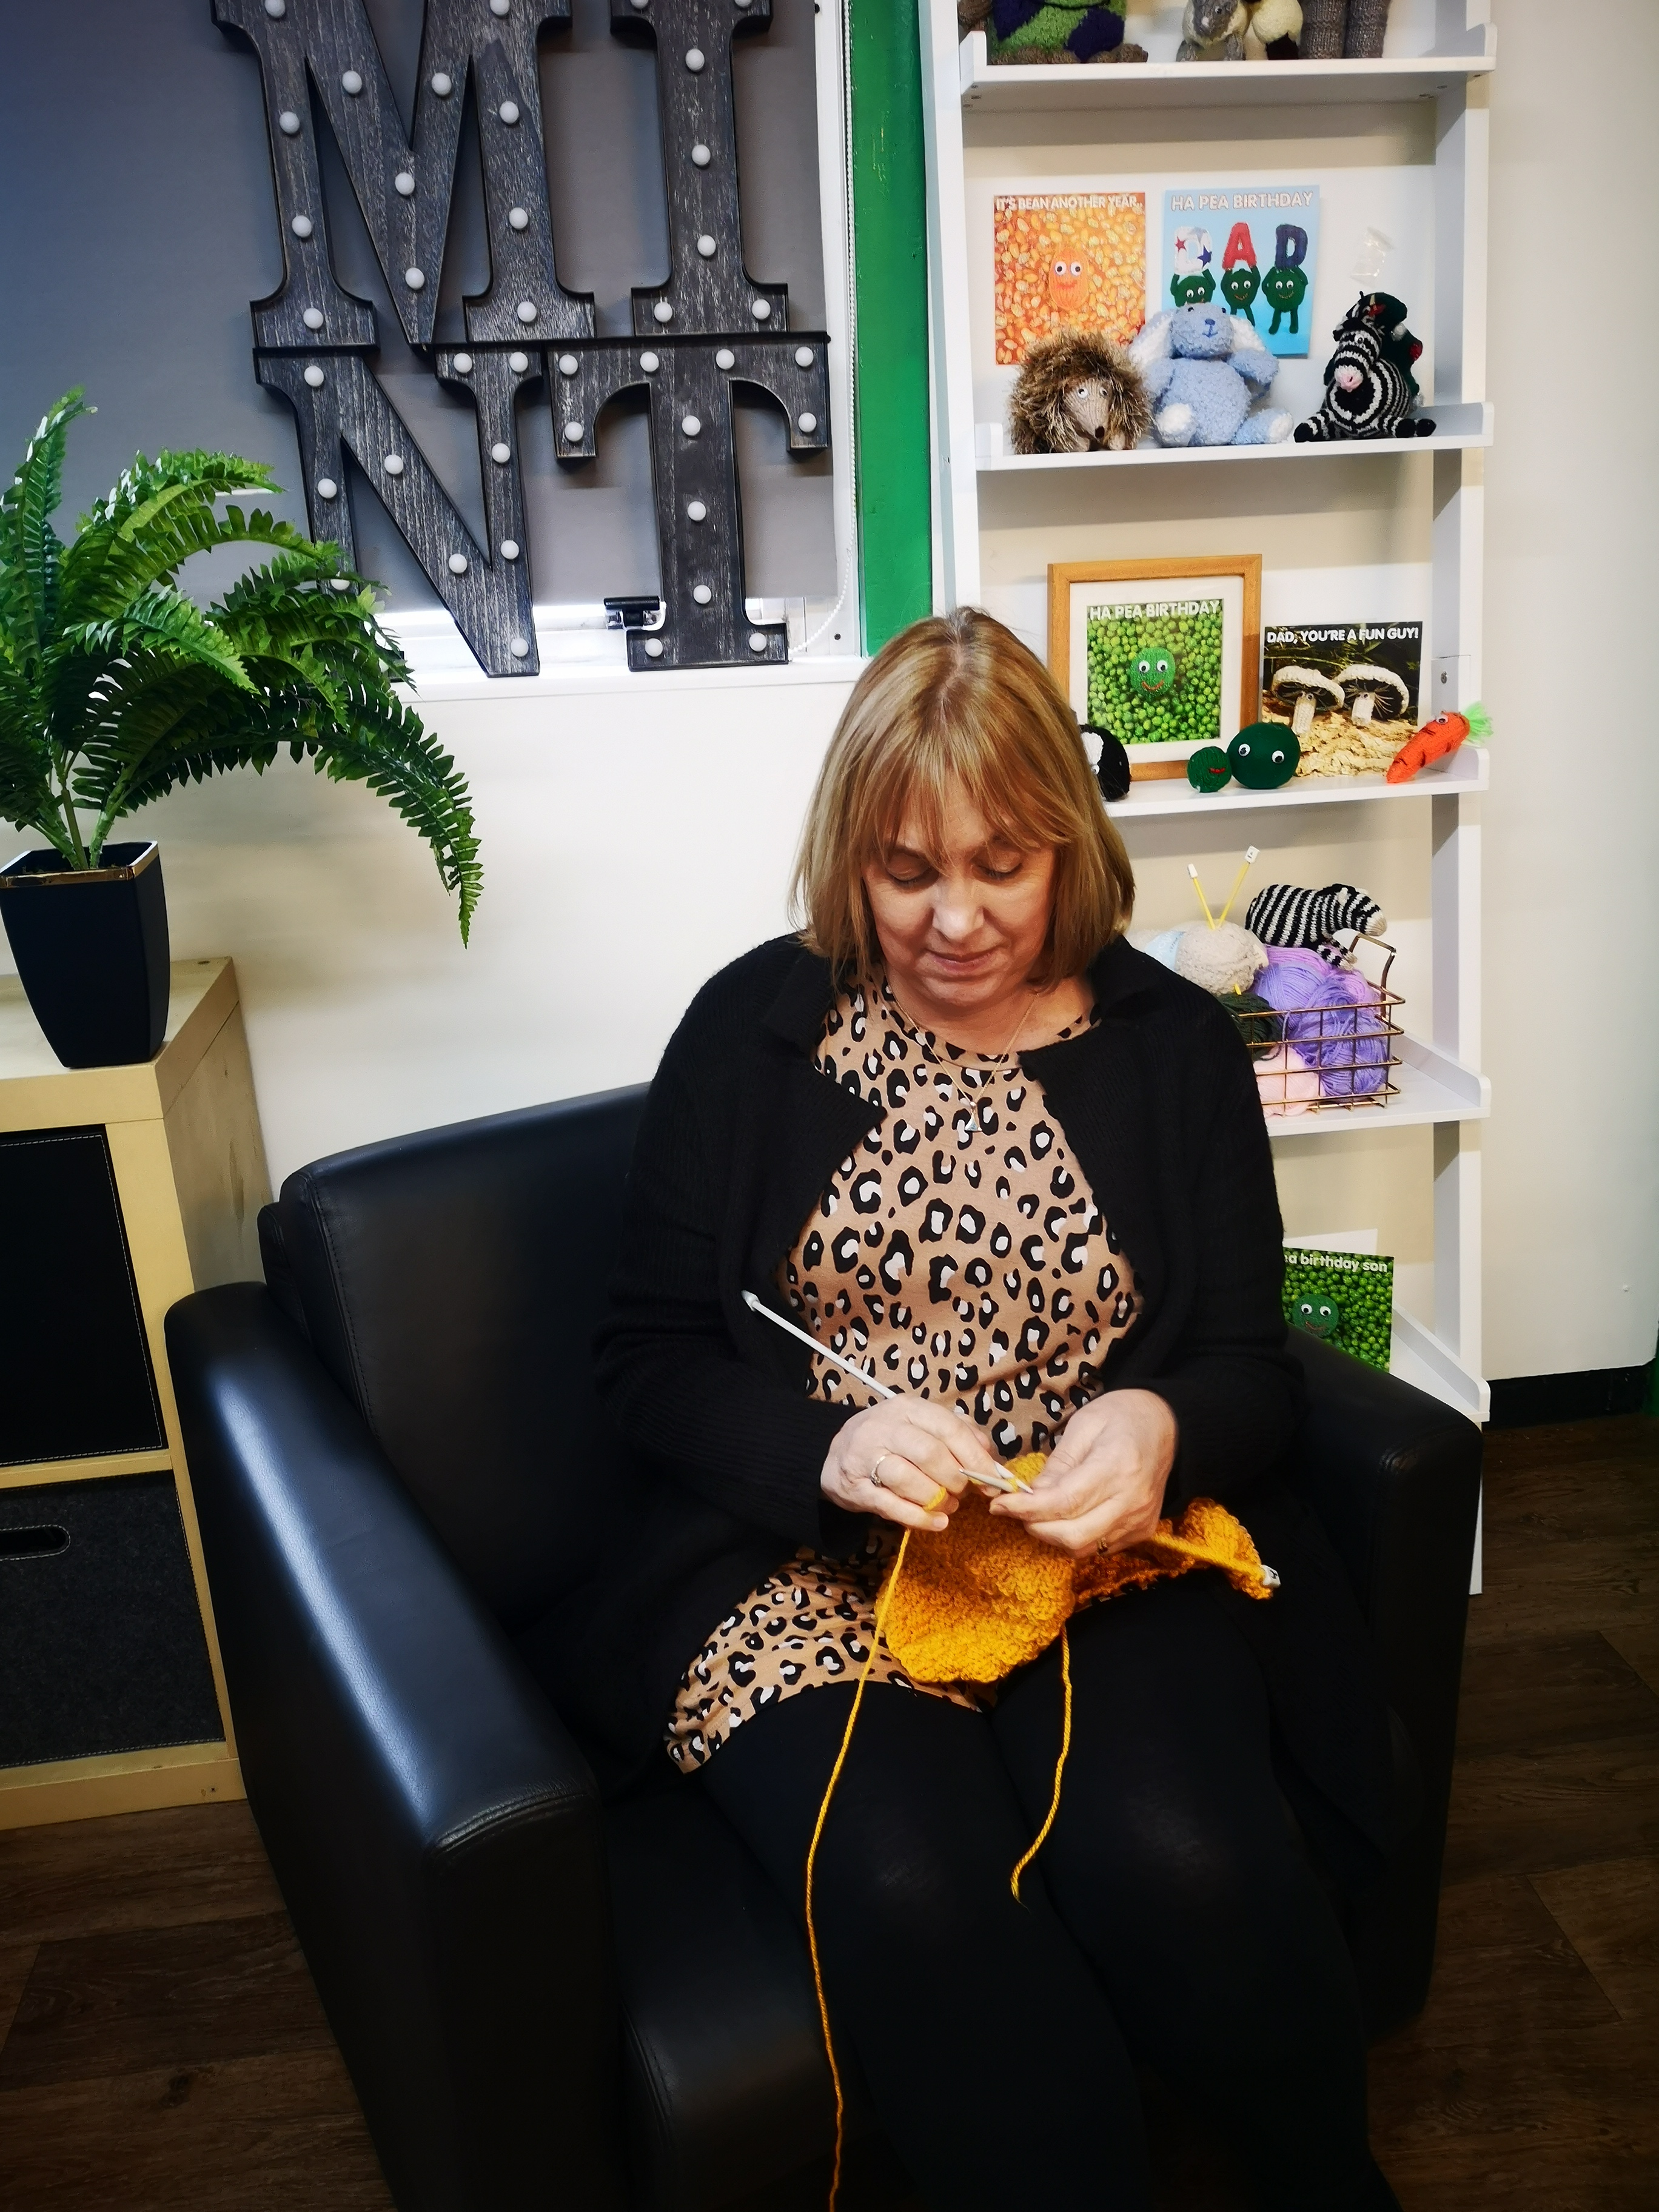 Above: Debbie Williams, co-owner of Mint Group in knitting mode.